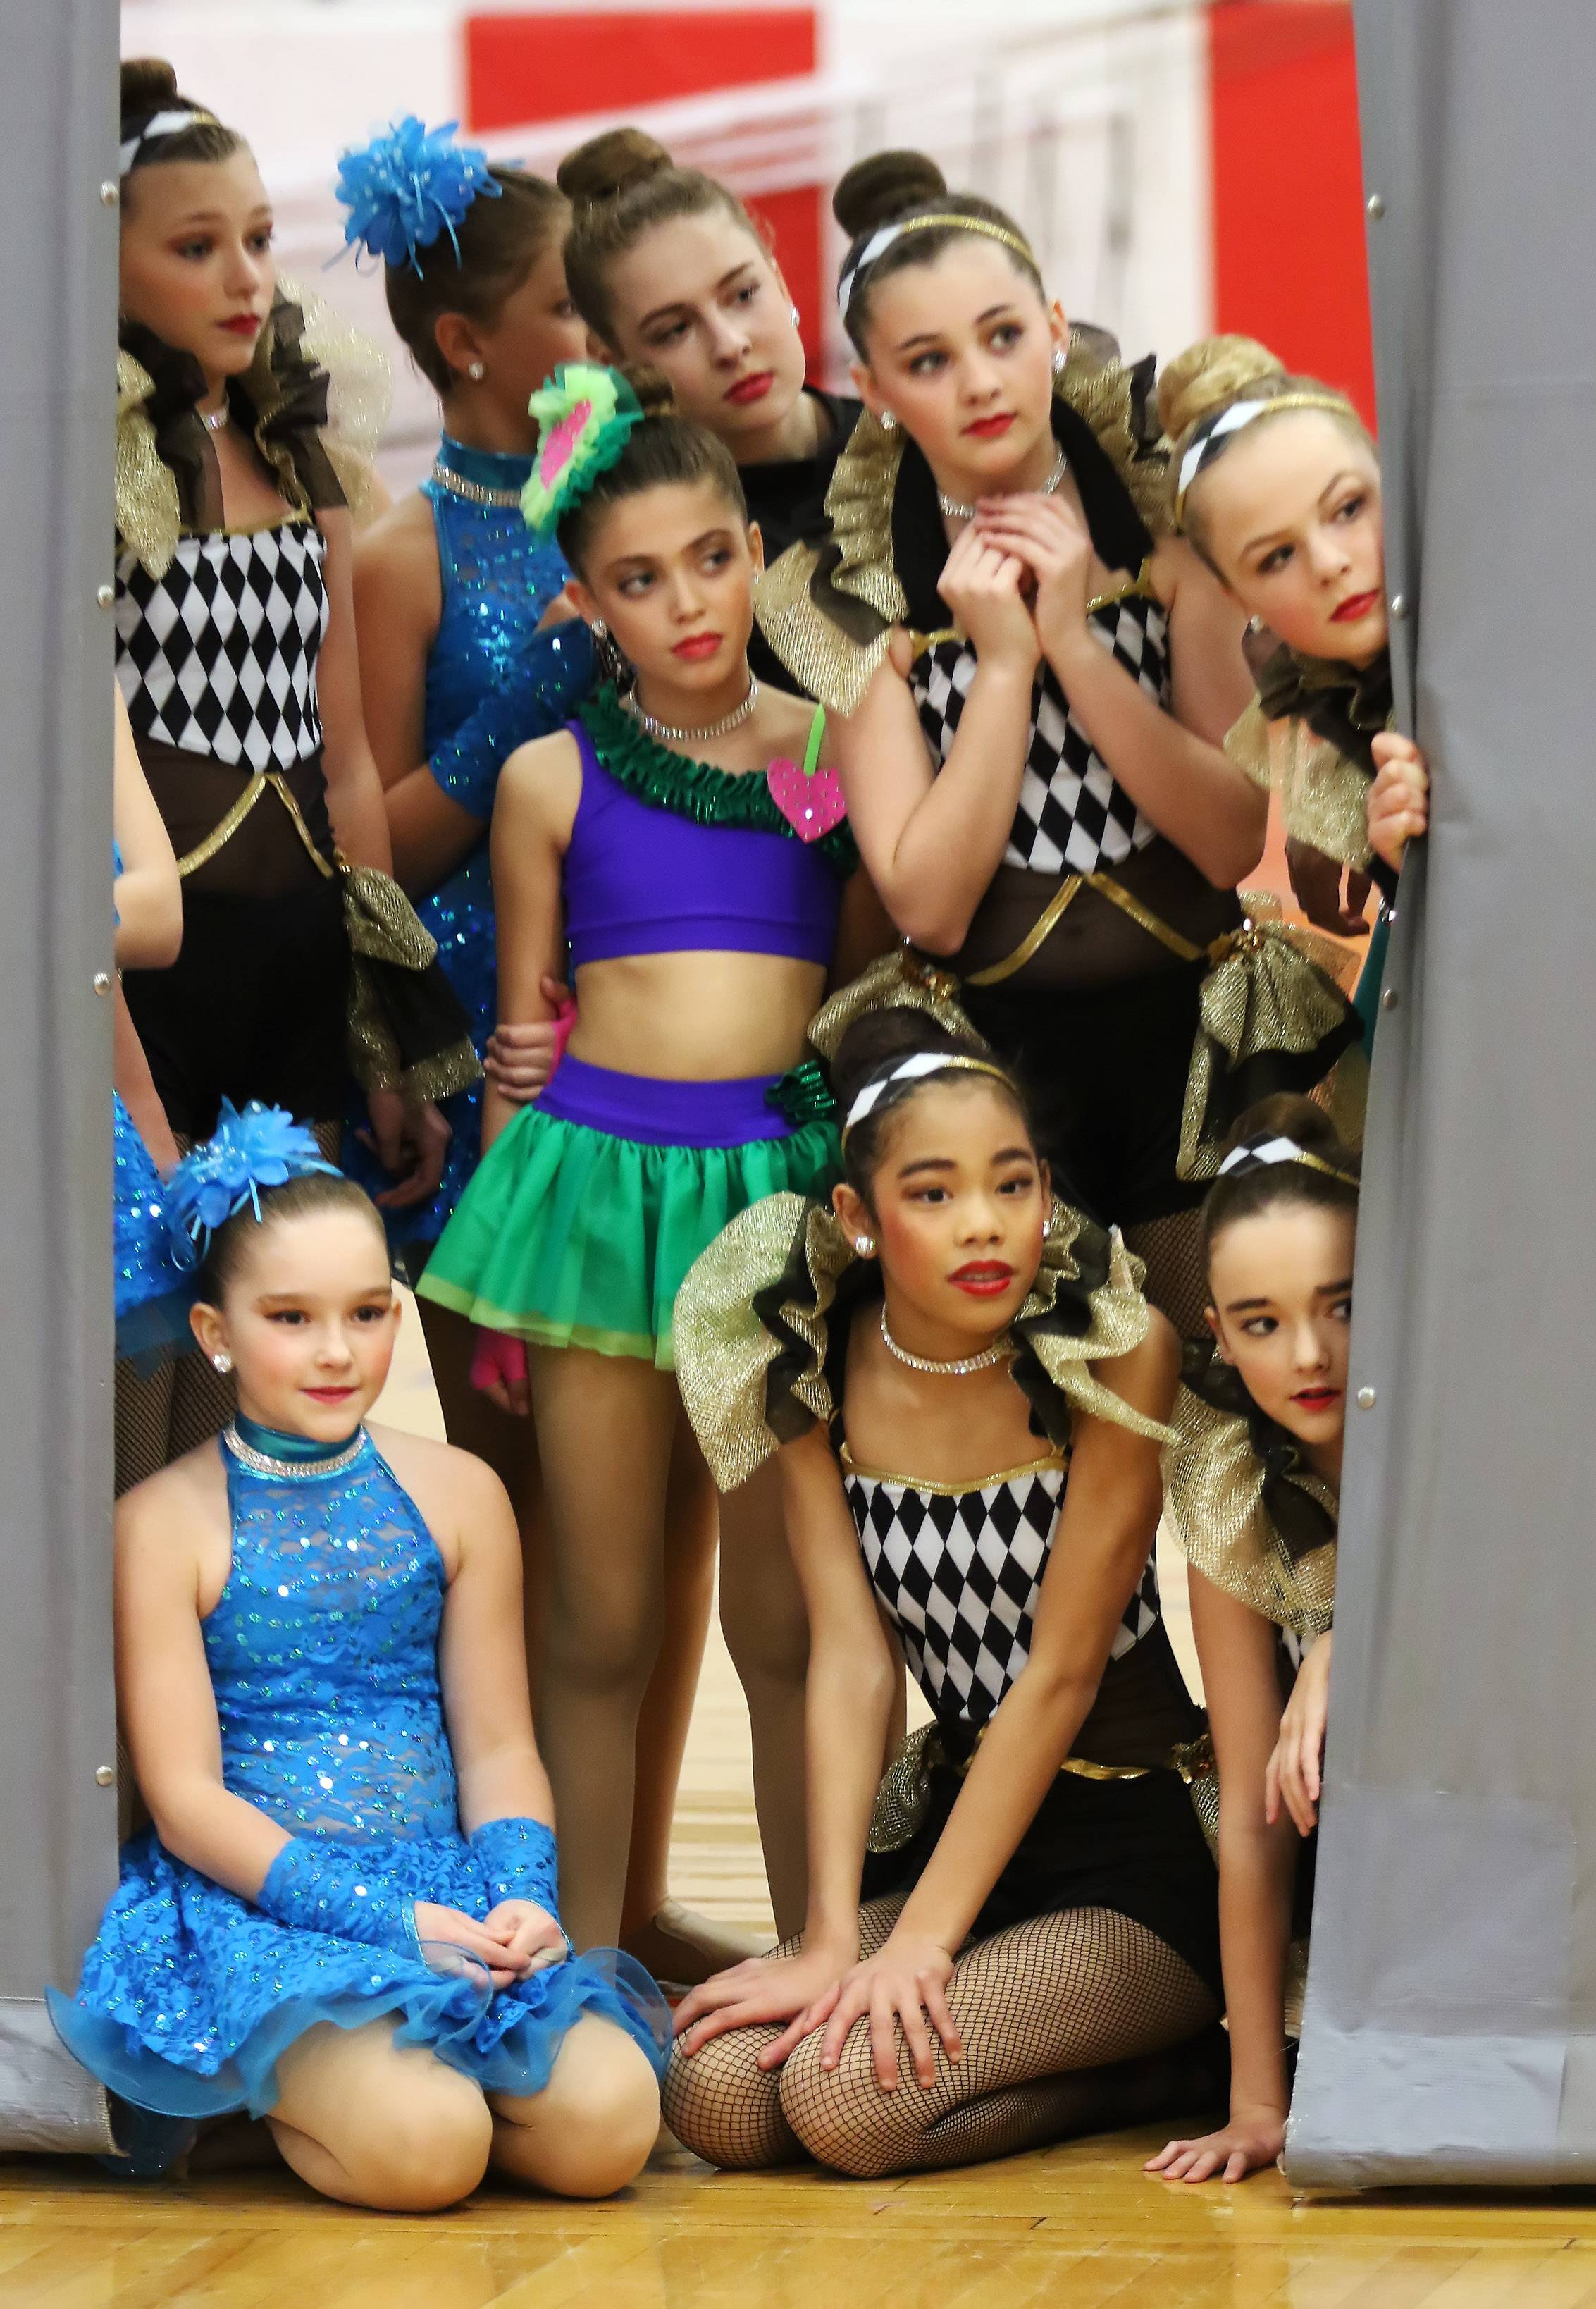 Members of Bataille Academie of the Danse watch fellow dancers perform during the 4th Annual Barrington Family Expo on Sunday at Barrington High School. The exposition featured 90 booths of area businesses and community resources.